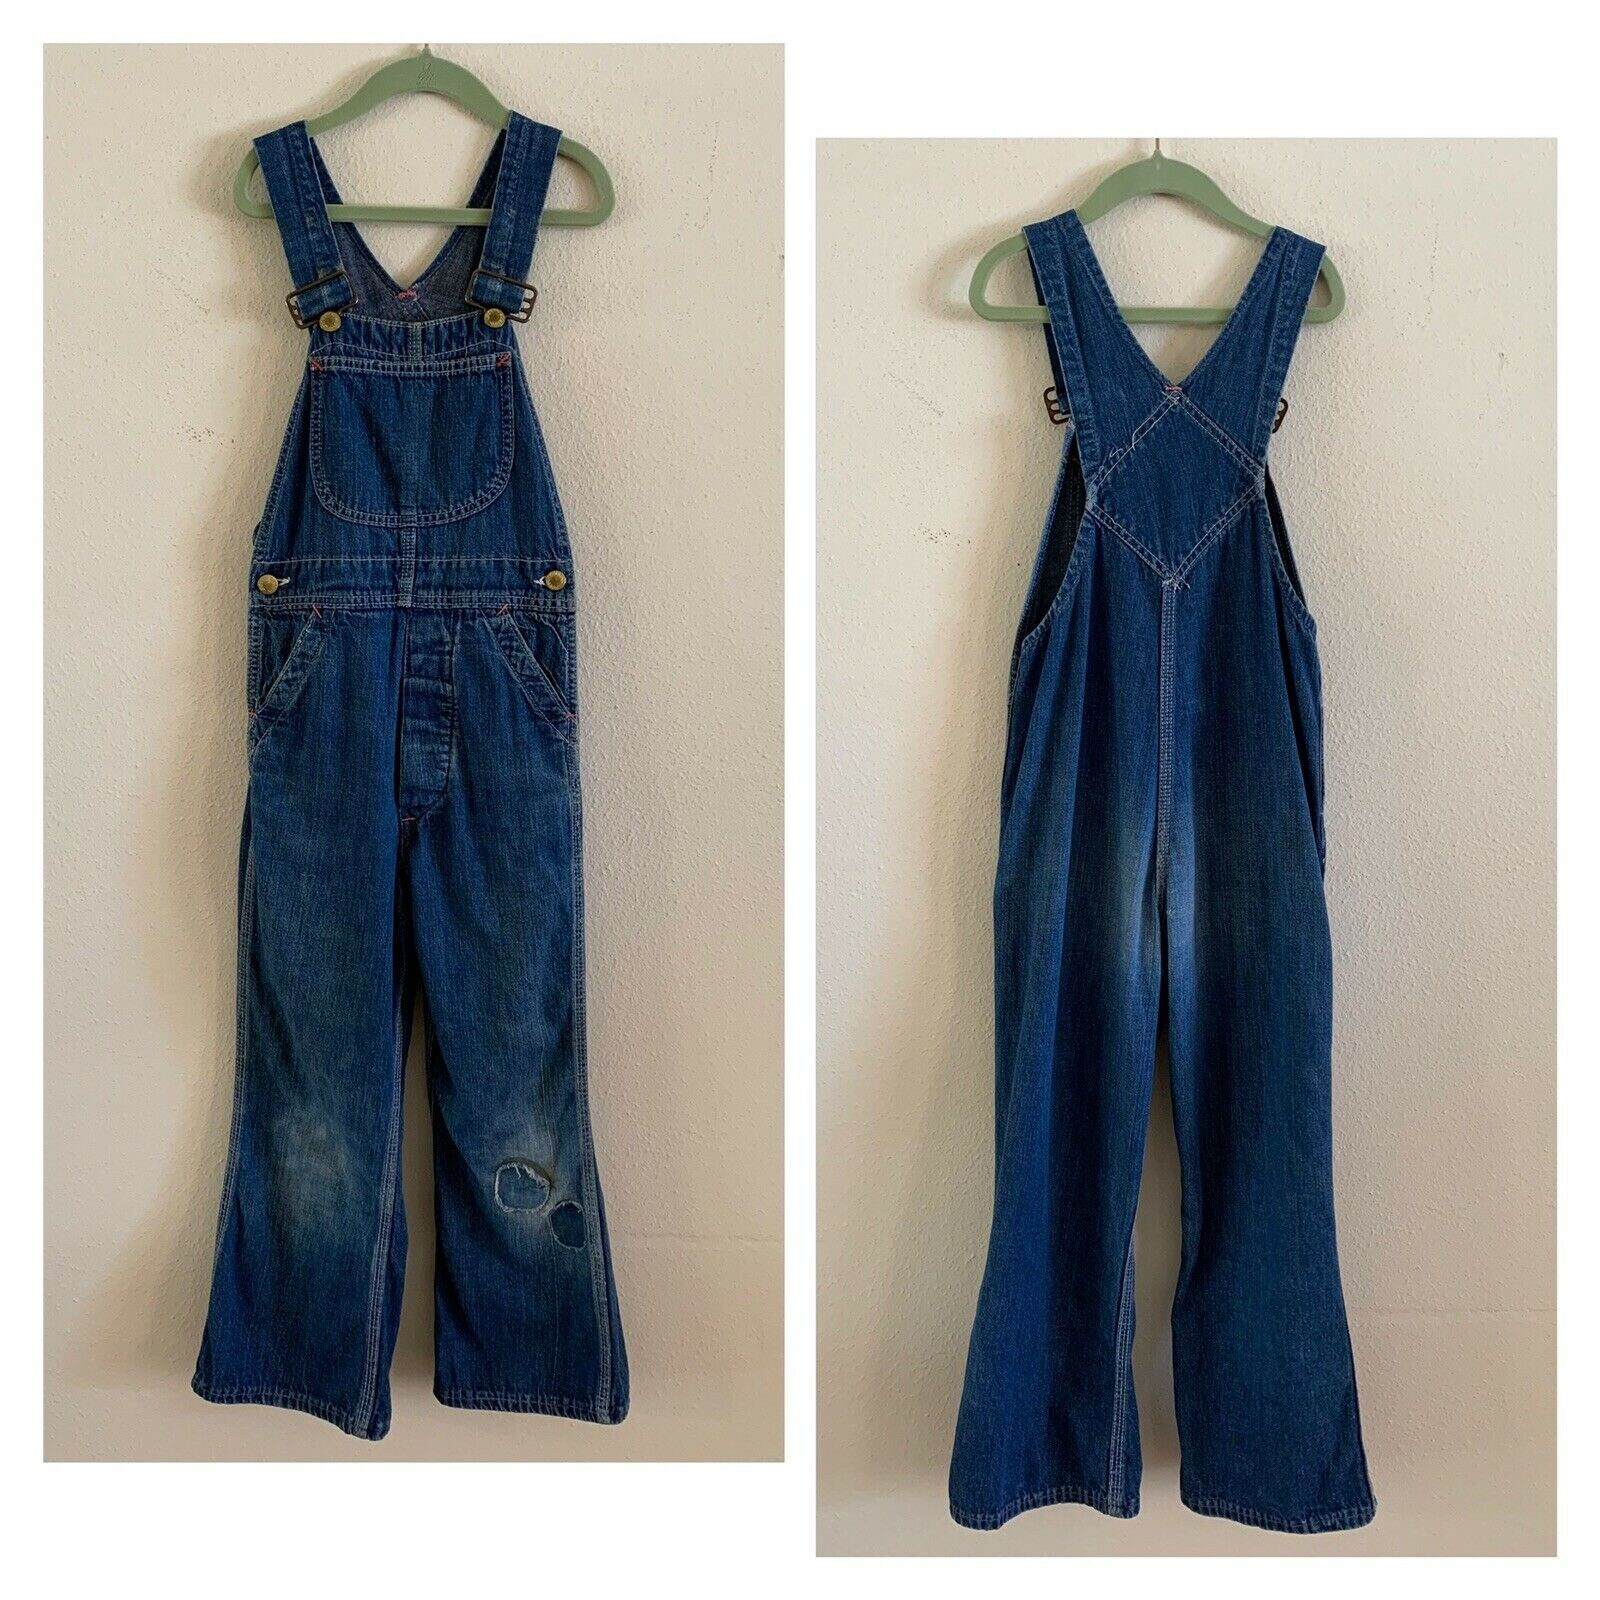 Vintage Overalls & Jumpsuits 50S Patched Union Made Distressed Overalls Denim Farm Jeans Chore Work Rodeo Kids Western Buckaroo Made in Usa Cowboy Cowgirl Pants $67.50 AT vintagedancer.com